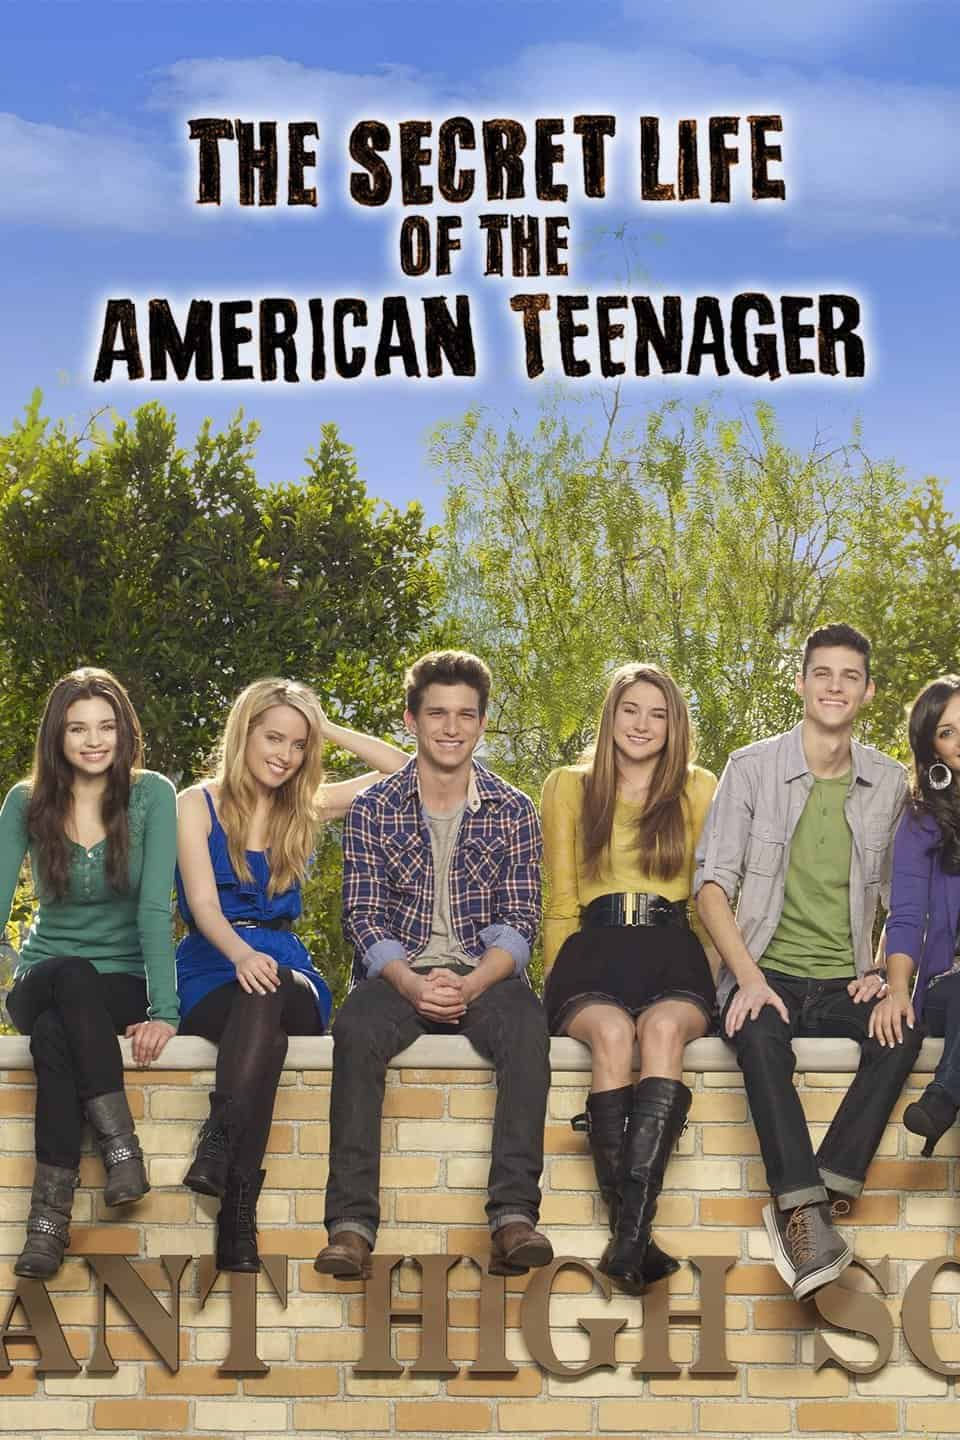 The Secret Life of the American Teenager, 2008